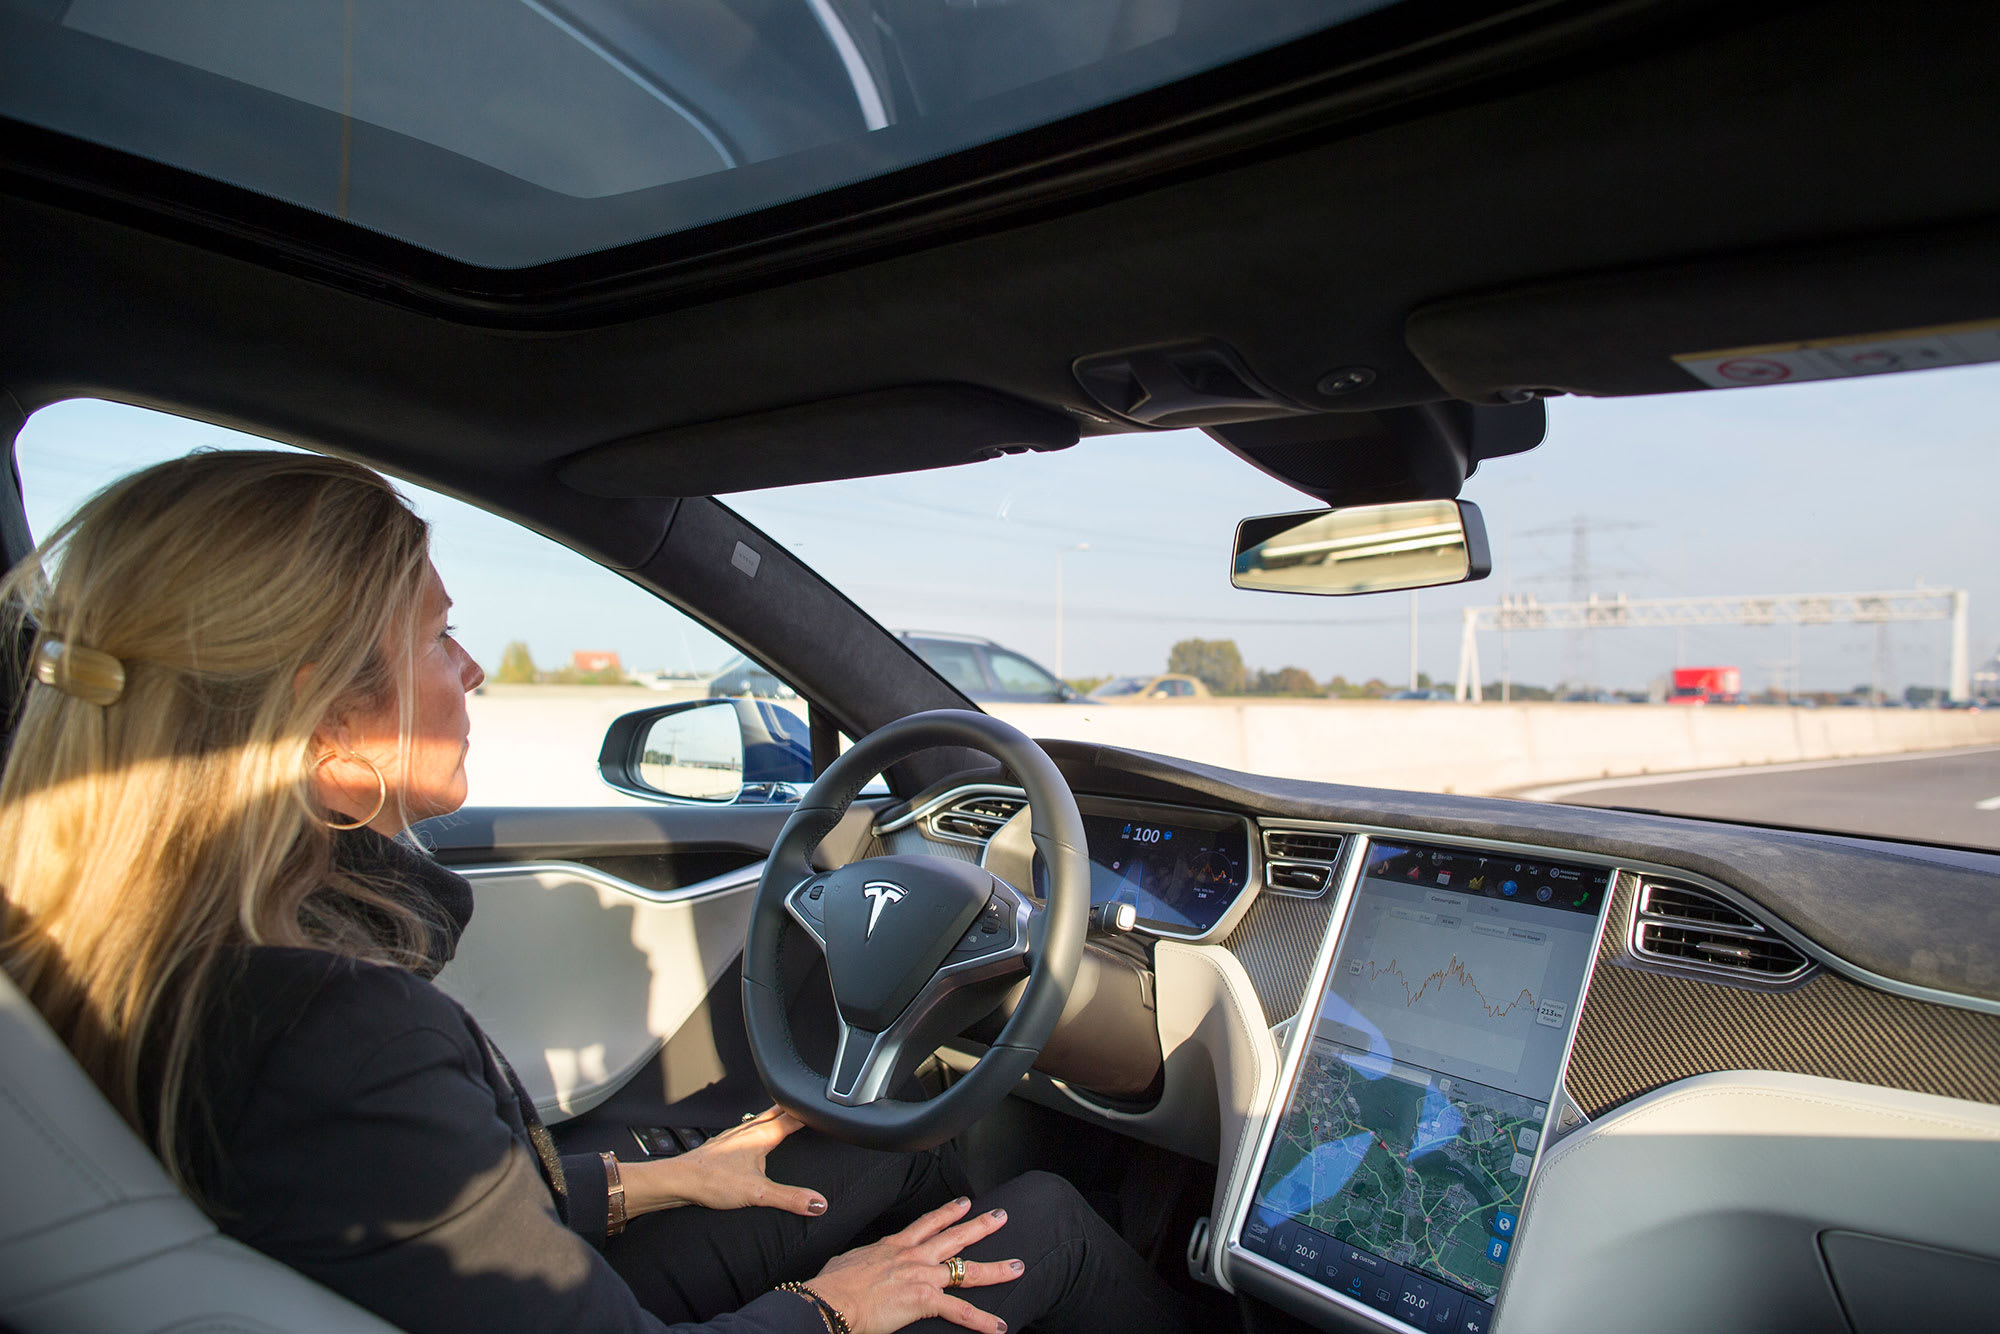 Watch Tesla drivers apparently asleep at the wheel, renewing safety questions